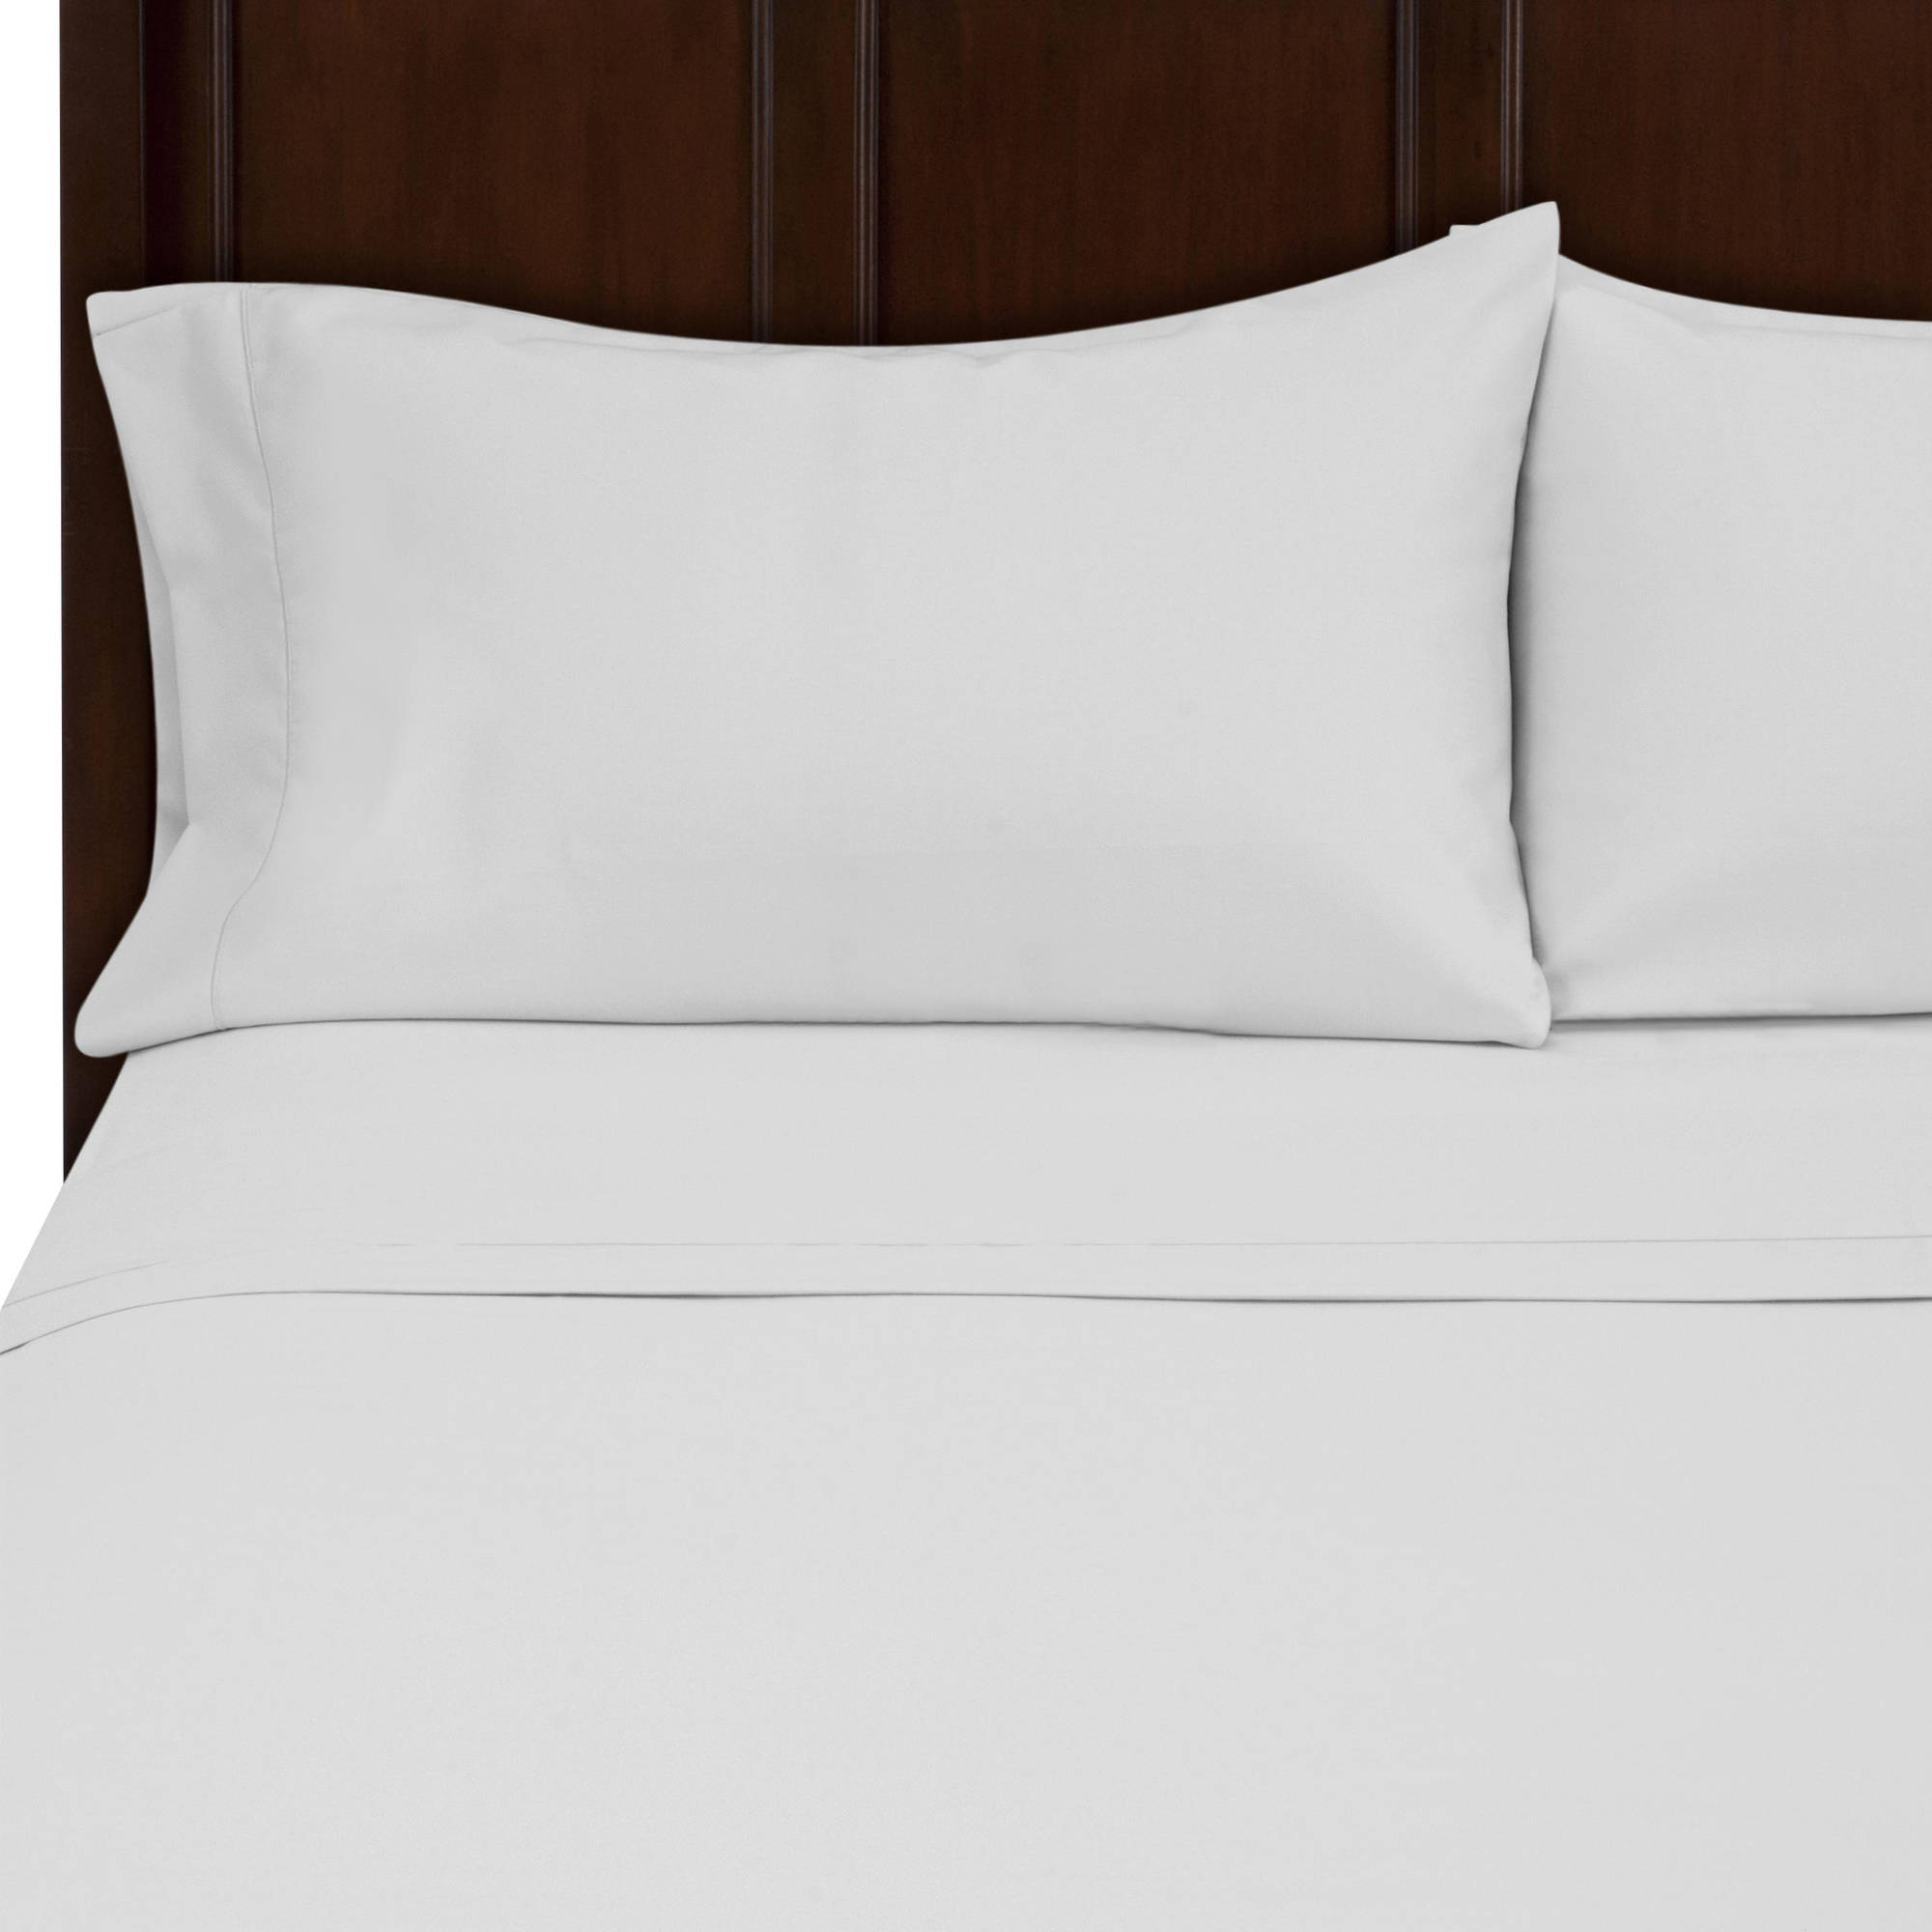 sale white hotel comforter sets sheets bed macys a bedding s collection bag clearance in queen cheap macy